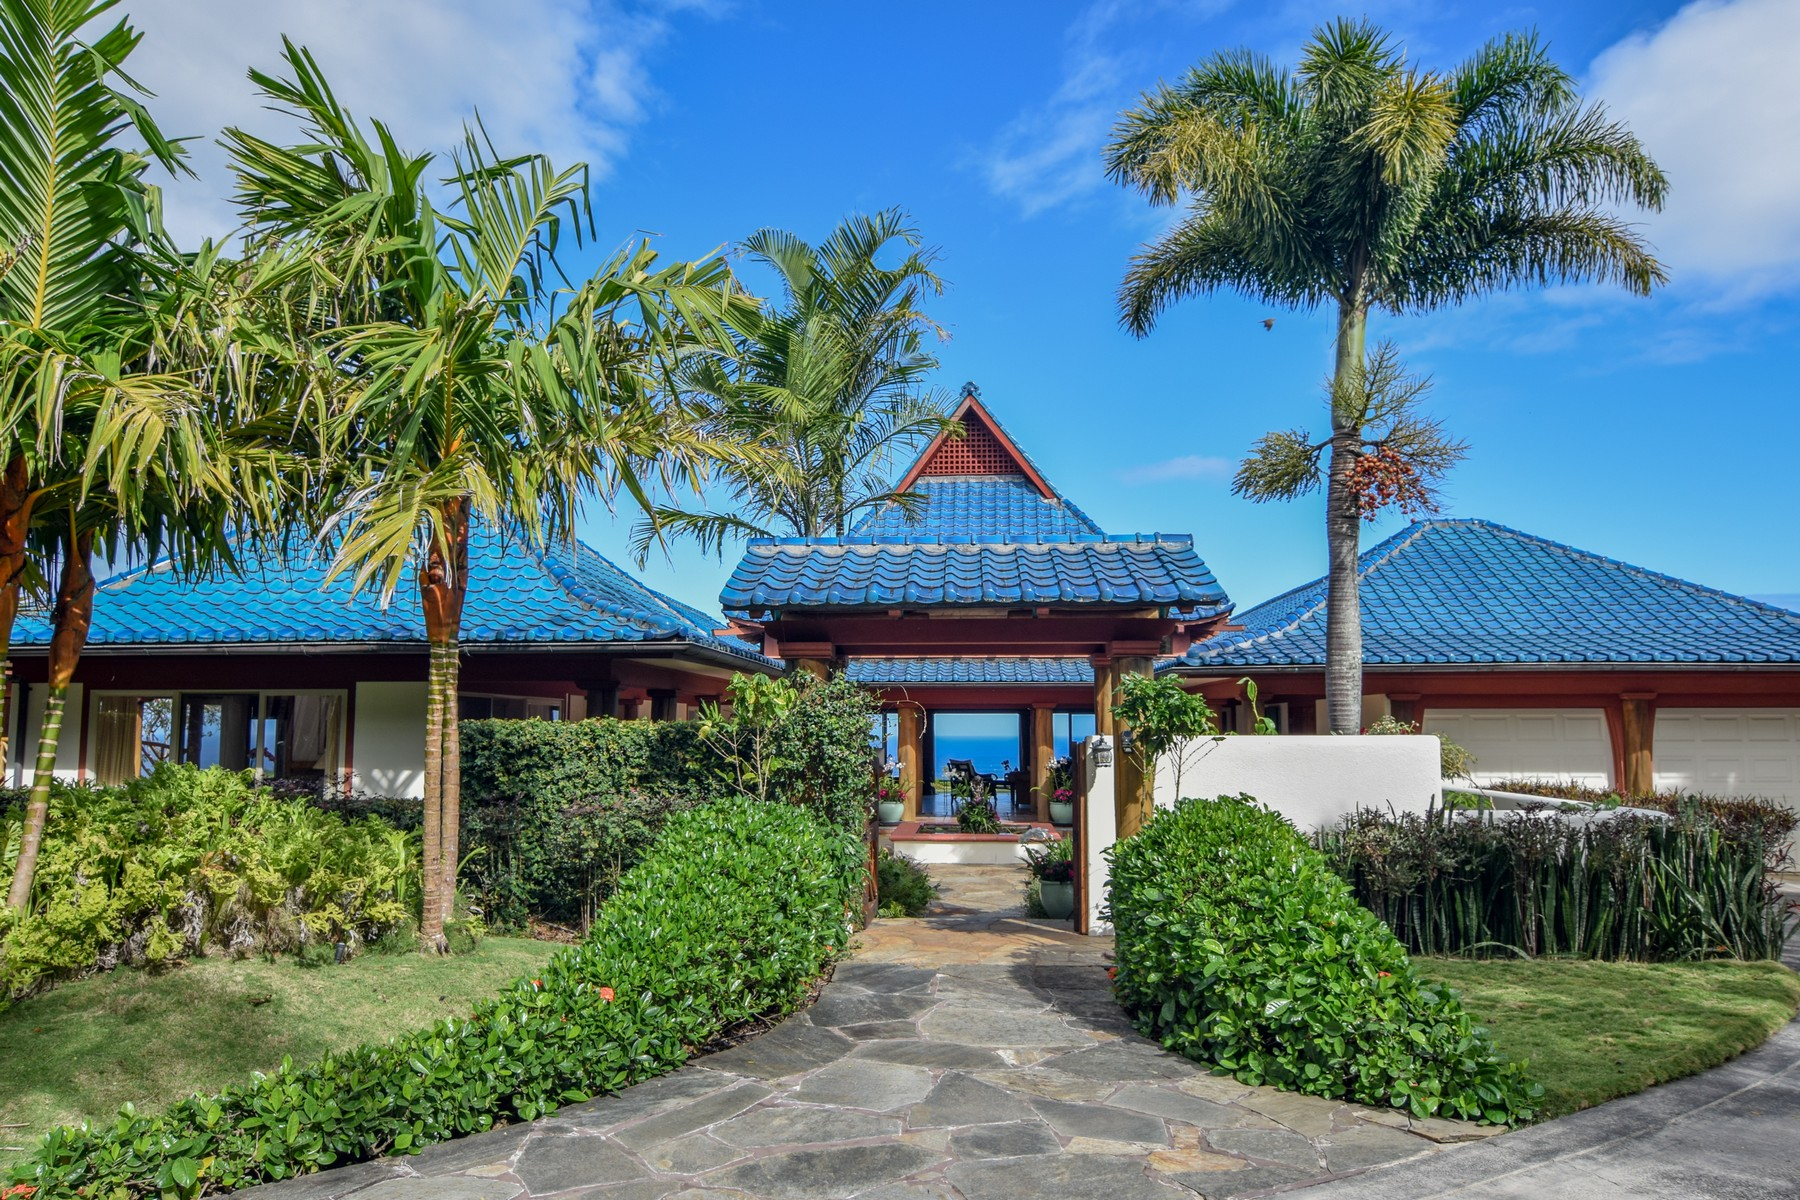 Property For Sale at Ponohouse-Dream Come True of Beautiful, Serene and Private Tropical Lifestyle!